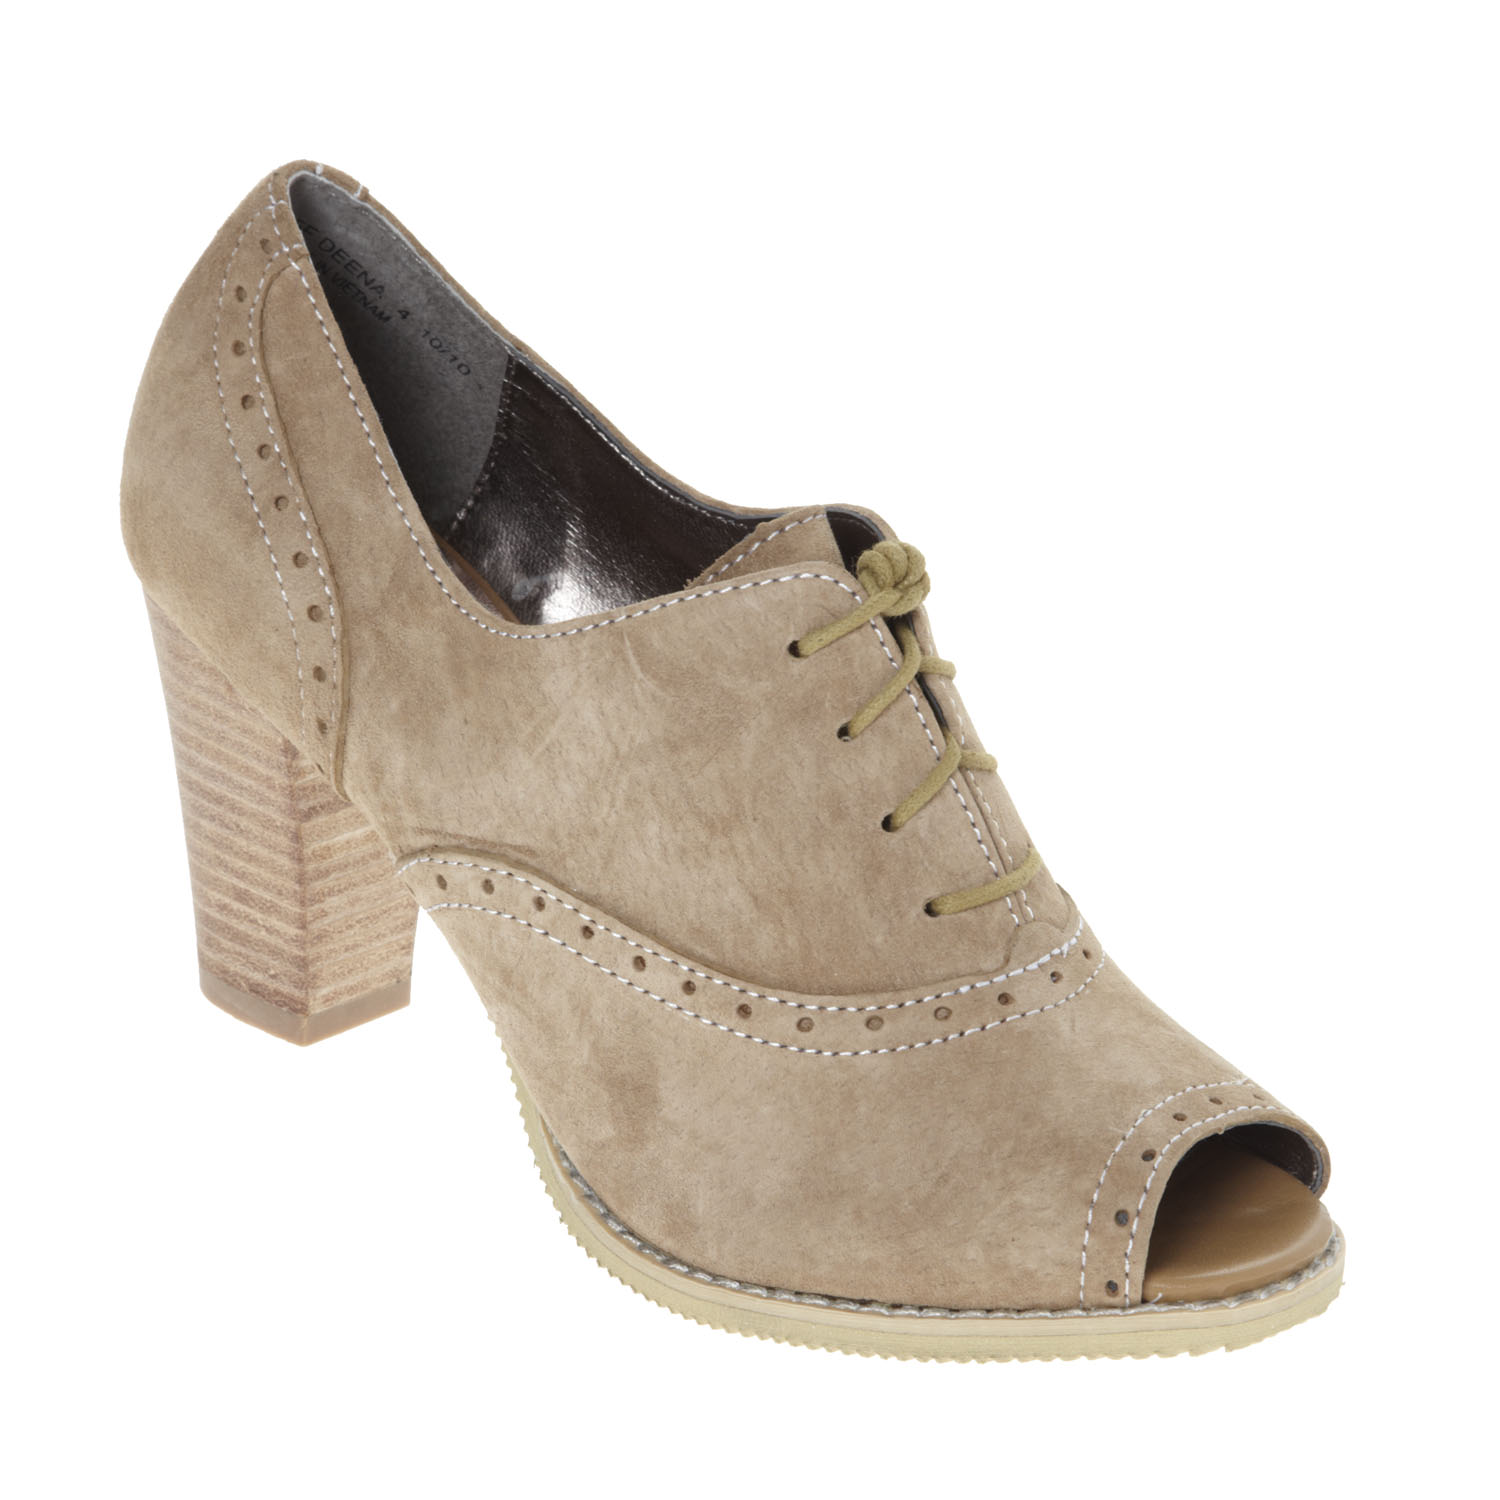 Suede Leather Ankle Boots #shoplately #shoes #ankleboots